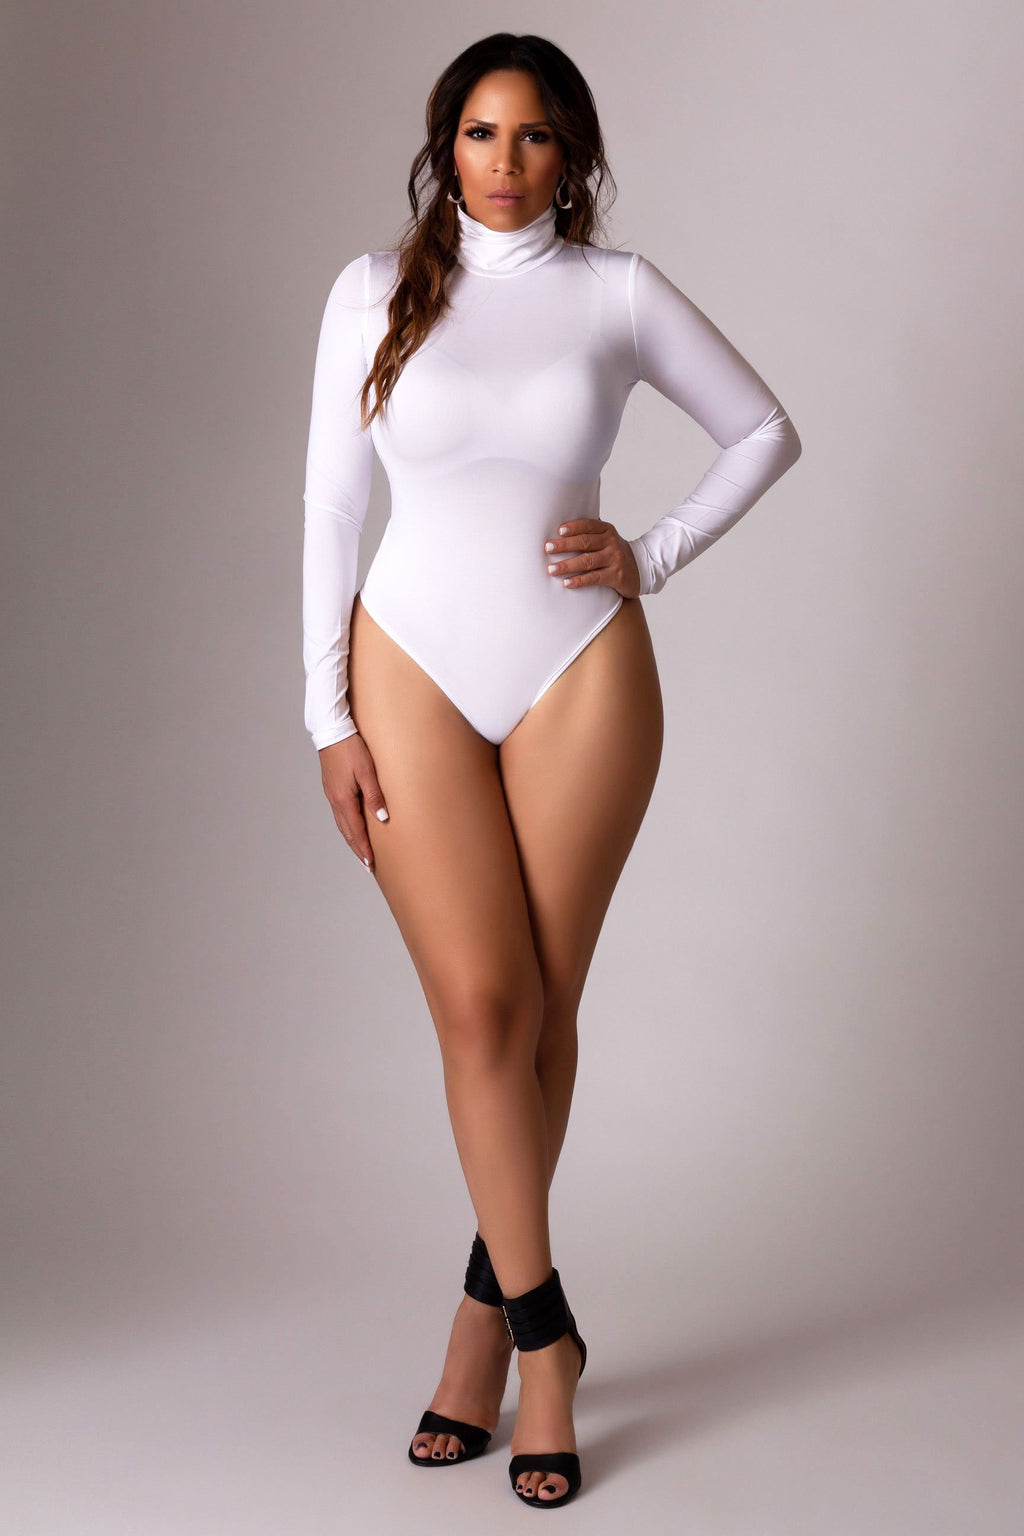 Thea Turtle Neck Top Long Sleeves Bodycon Bodysuit Thong Leotard